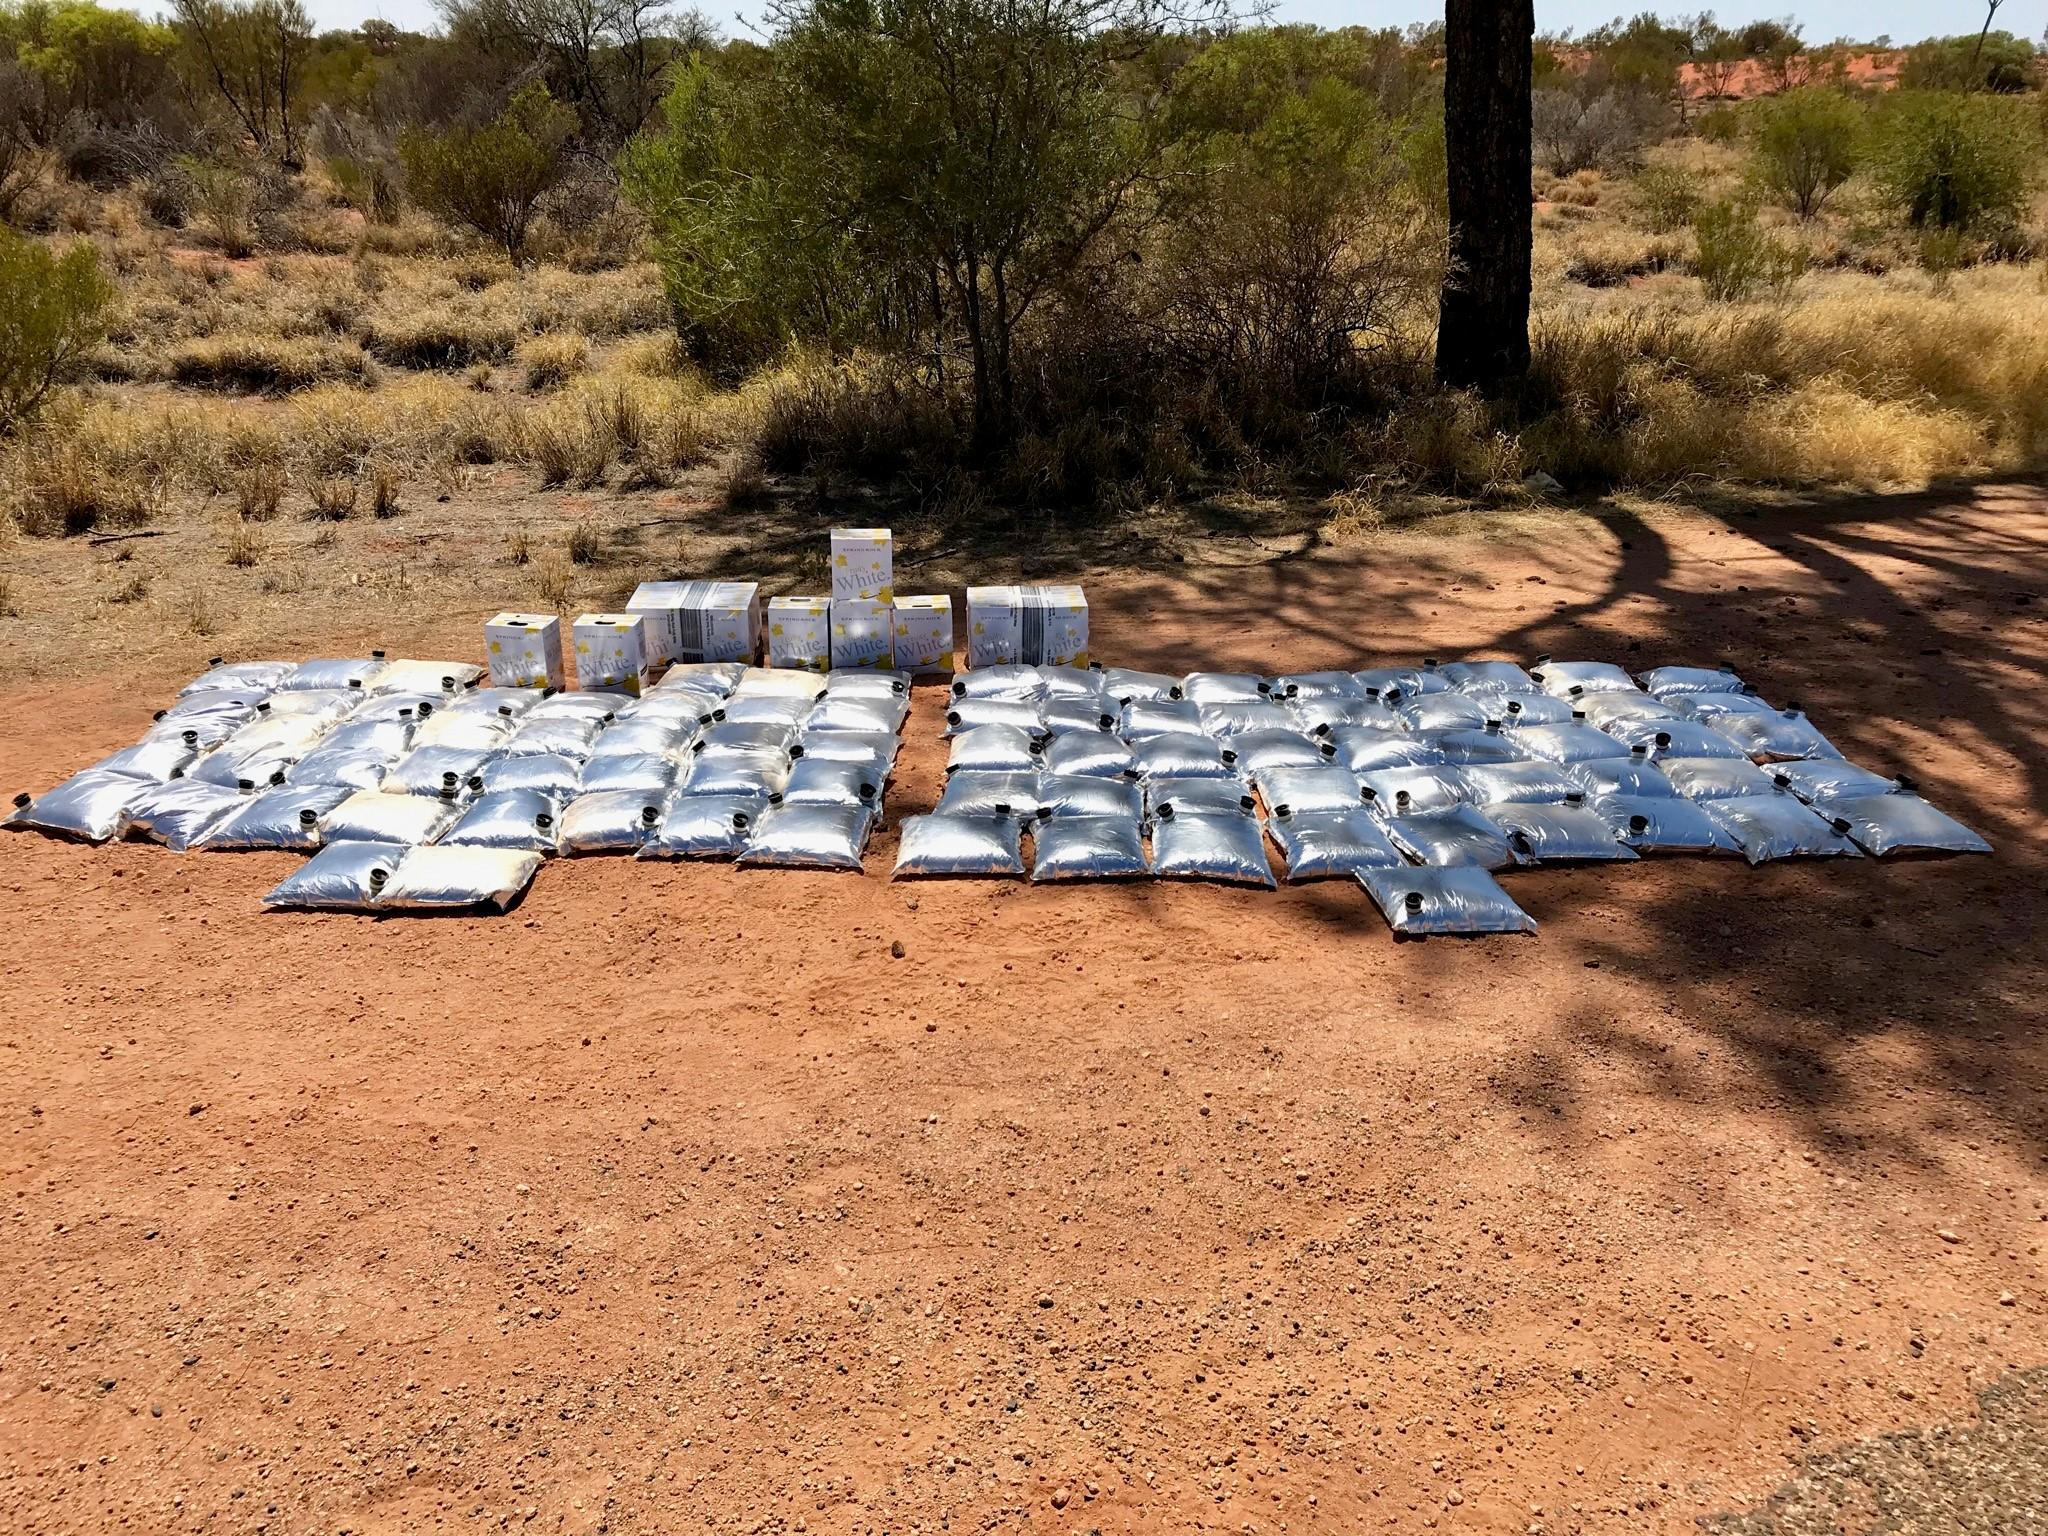 NT police destroy 500 litres of alcohol destined for remote communities